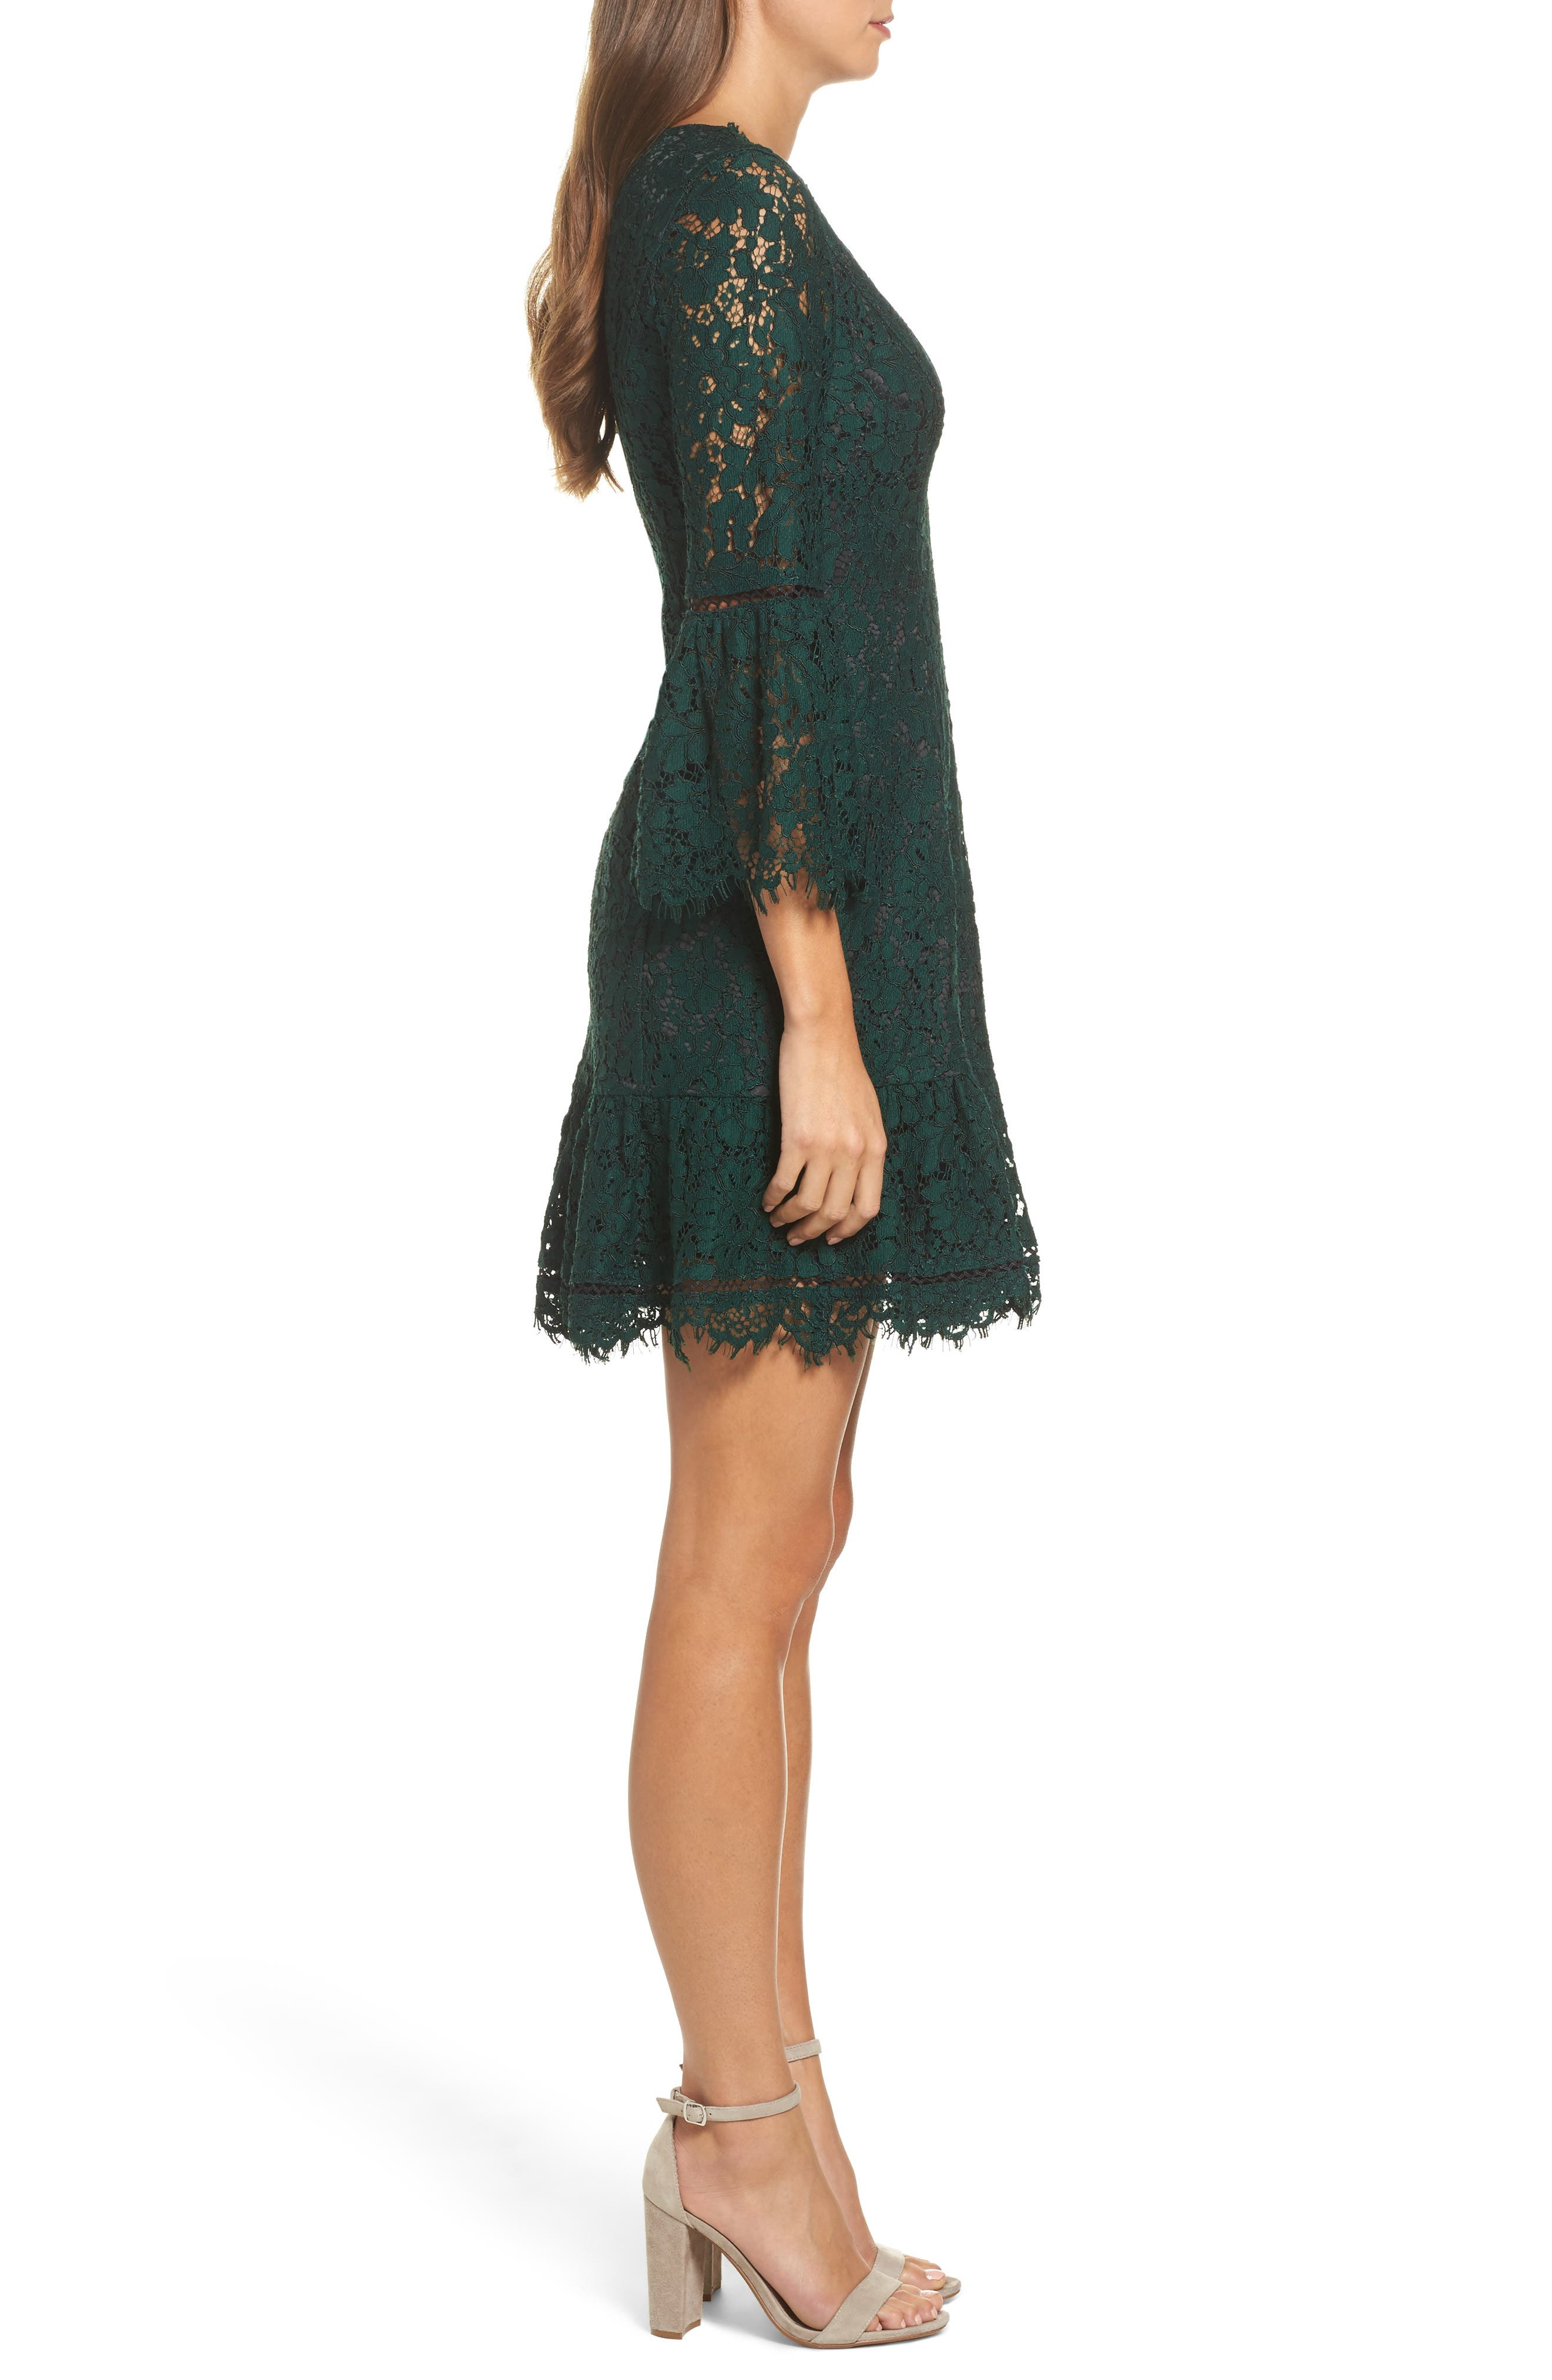 ELIZA J,                             Bell Sleeve Lace Cocktail Dress,                             Alternate thumbnail 3, color,                             GREEN/ BLACK